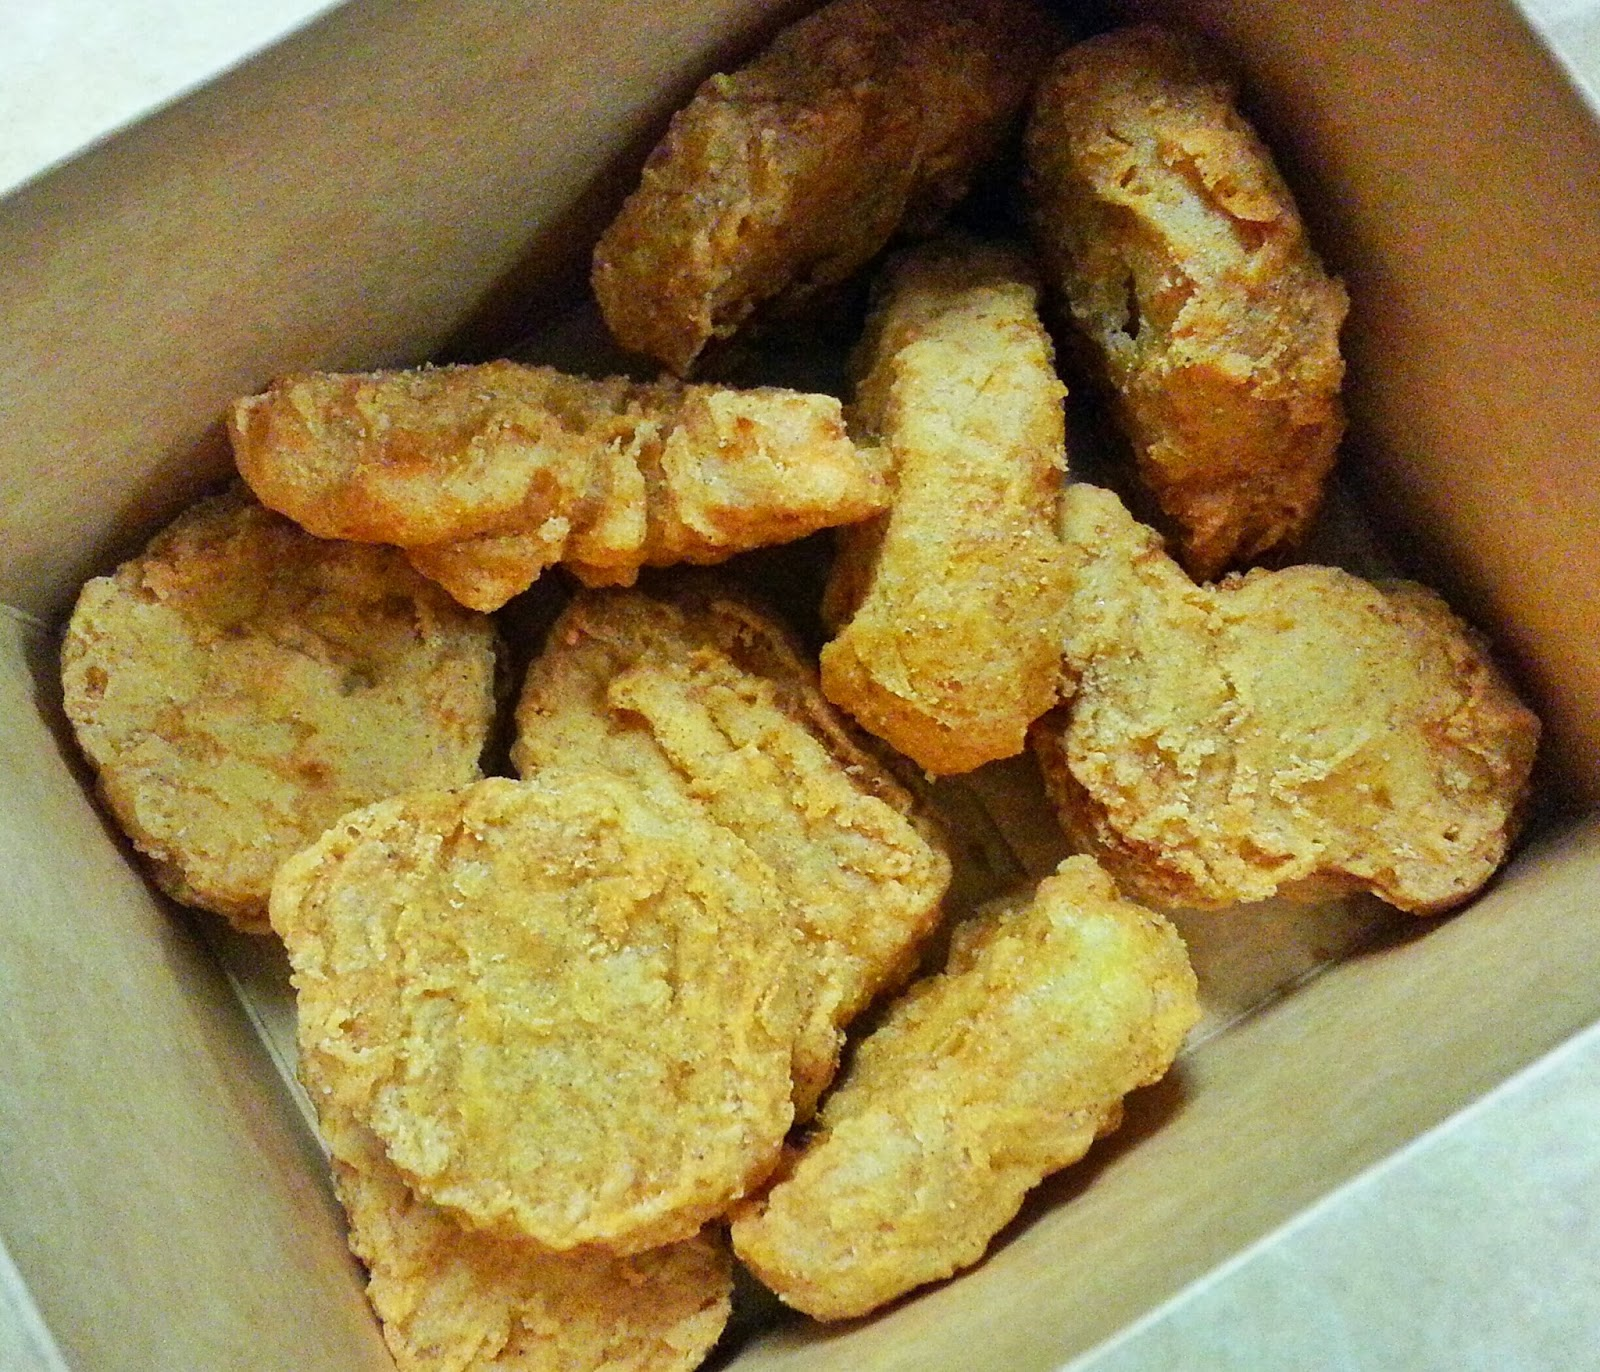 McDonald's 10-piece Chicken McNuggets